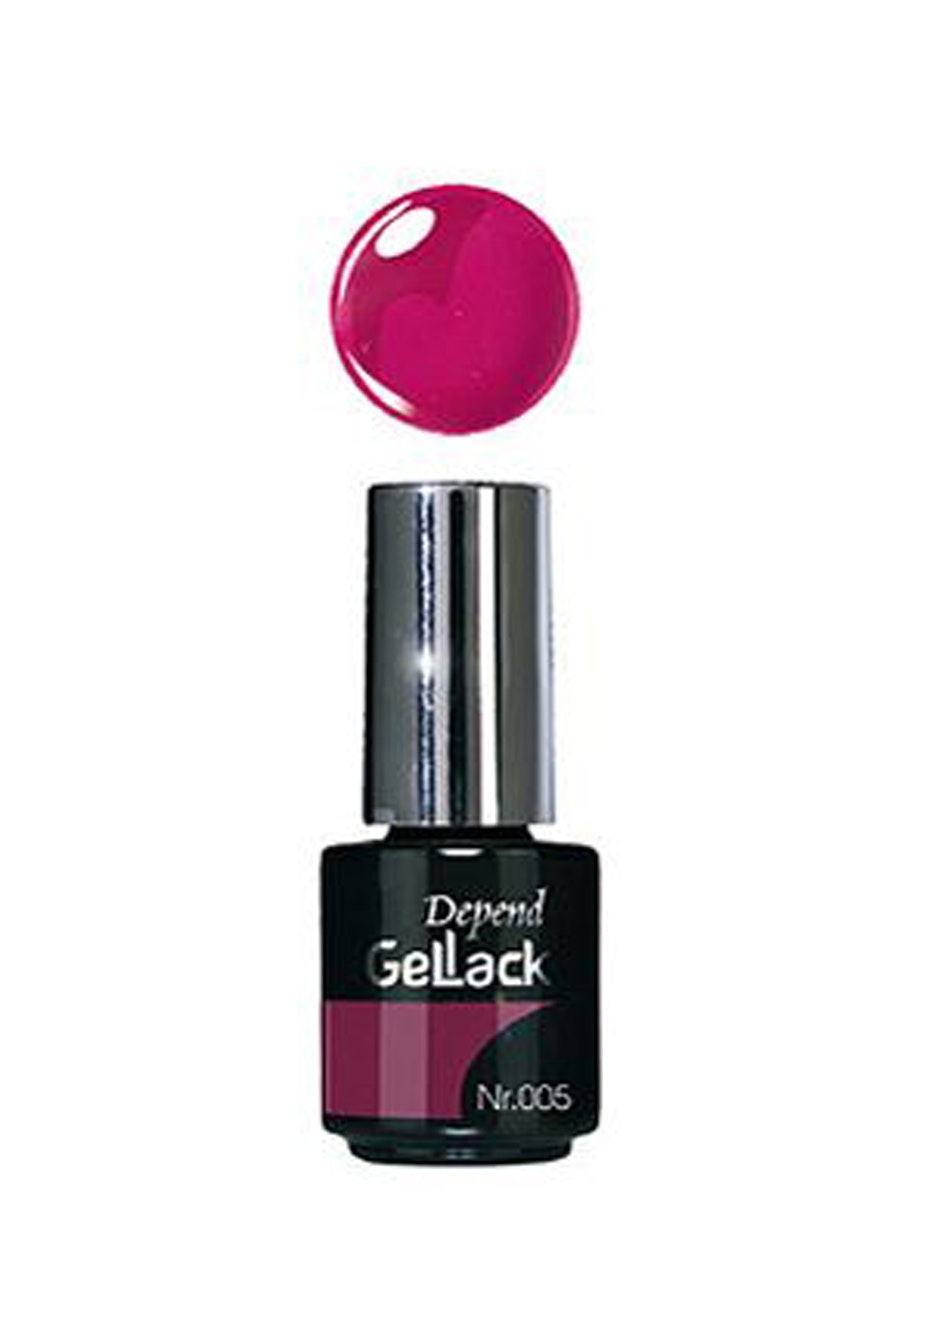 Depend Gellack Colour 005 Raspberry Red